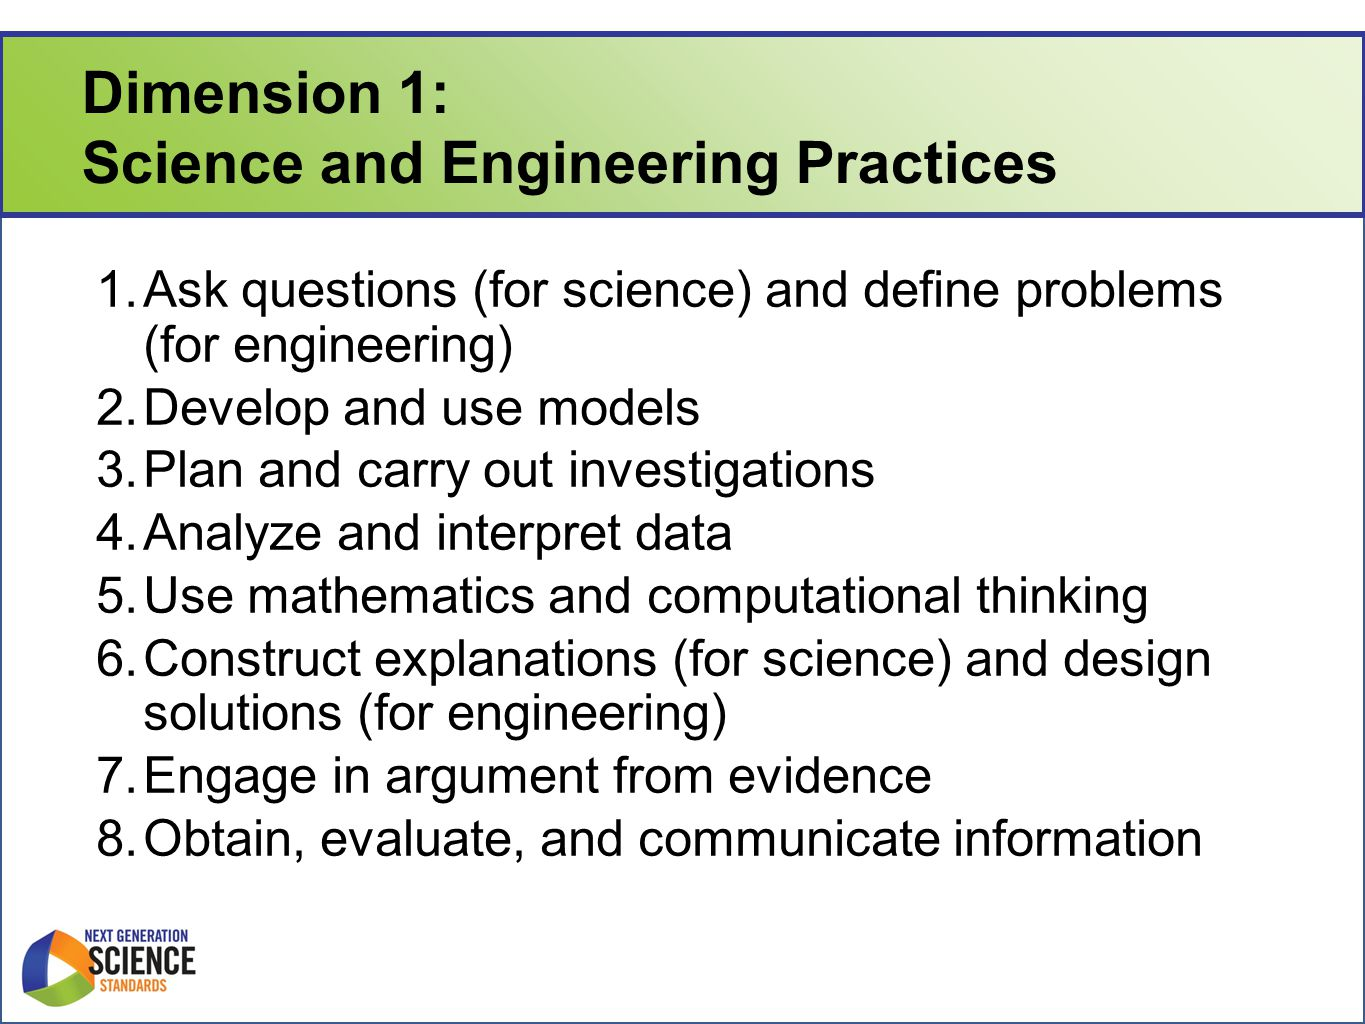 Dimension 1: Science and Engineering Practices 1.Ask questions (for science) and define problems (for engineering) 2.Develop and use models 3.Plan and carry out investigations 4.Analyze and interpret data 5.Use mathematics and computational thinking 6.Construct explanations (for science) and design solutions (for engineering) 7.Engage in argument from evidence 8.Obtain, evaluate, and communicate information